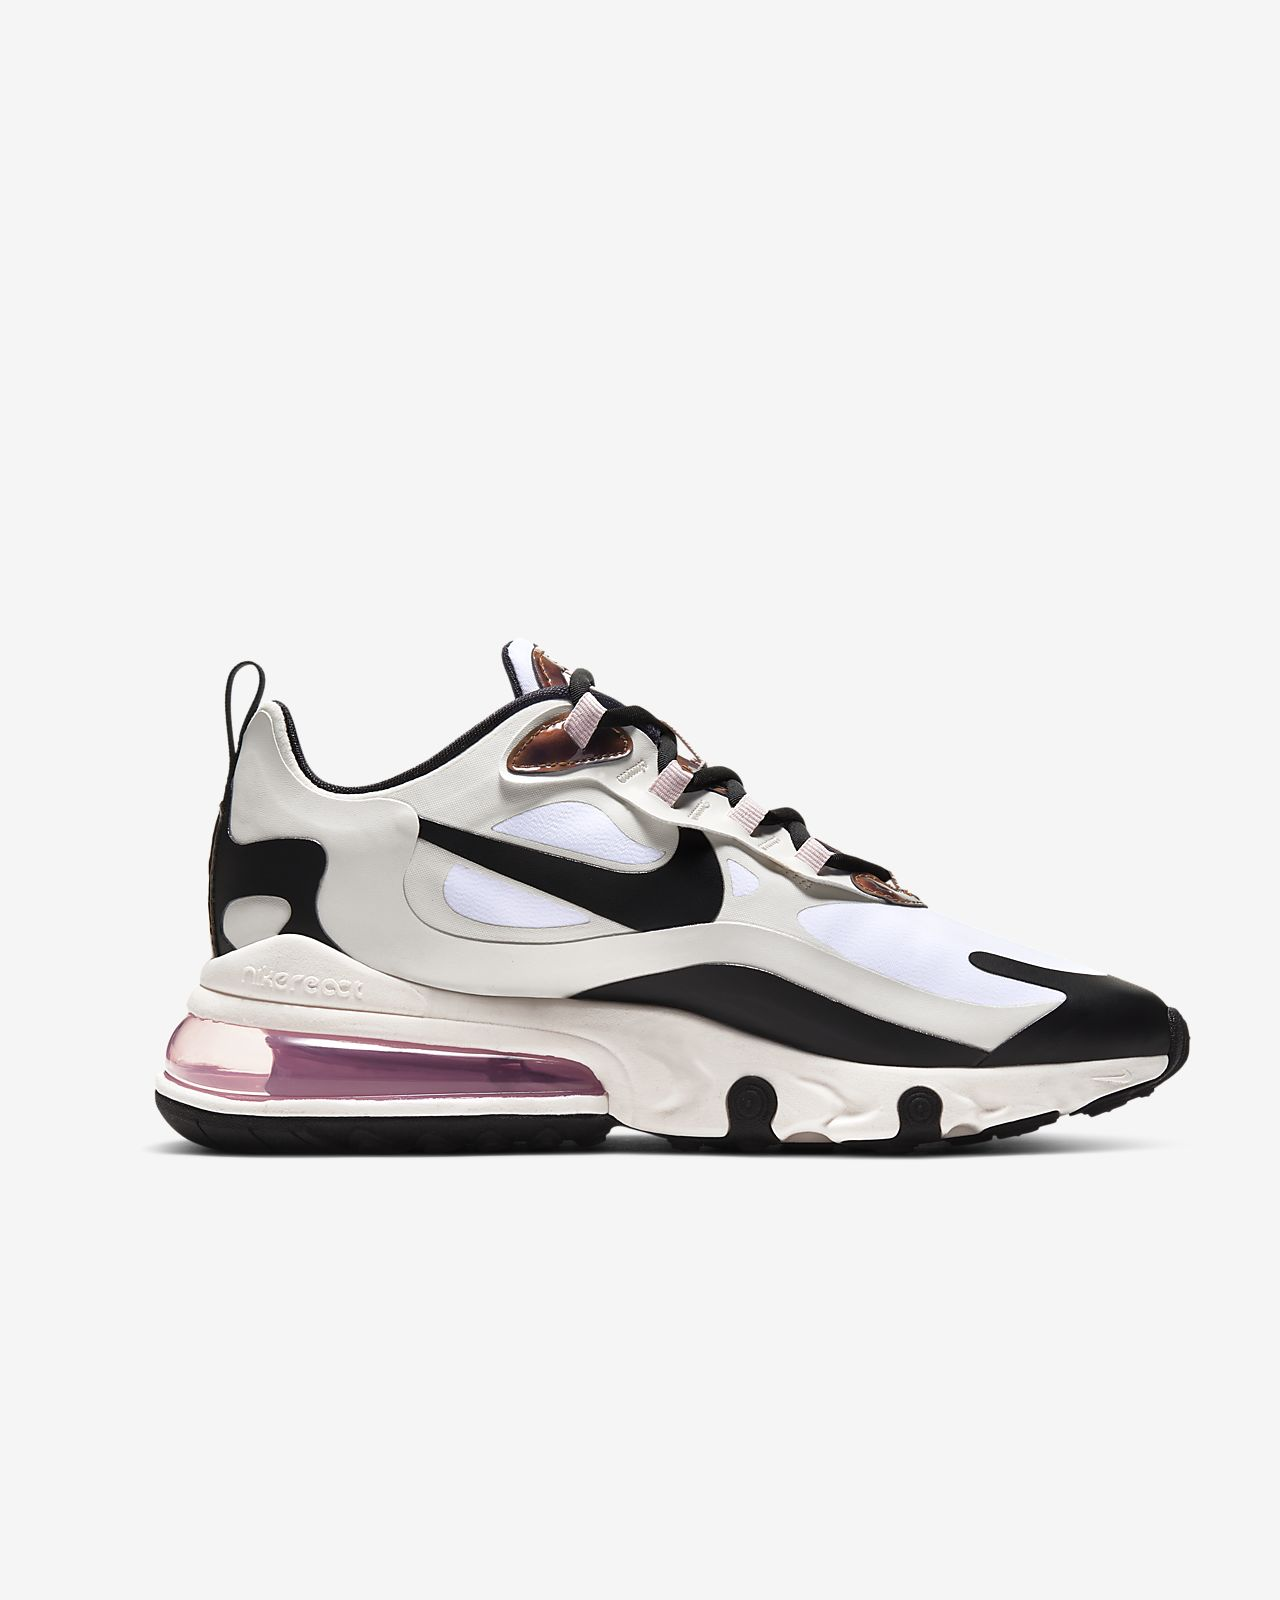 air max 270 react pink and grey